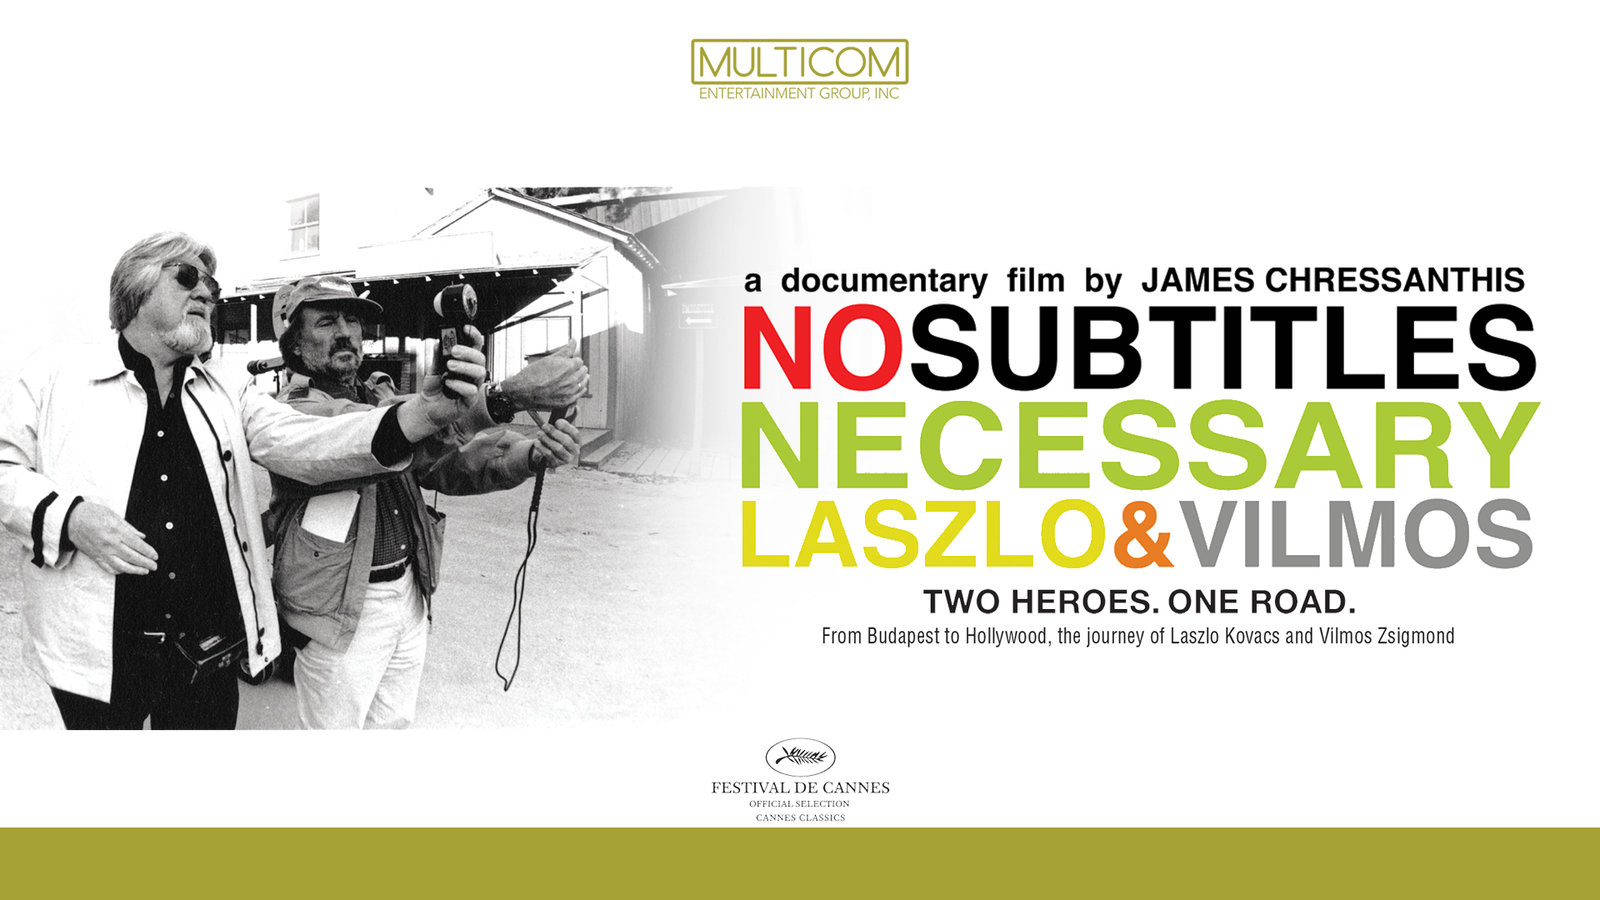 No Subtitles Necessary - The Lifelong Friendship of Two Legendary Cinematographers